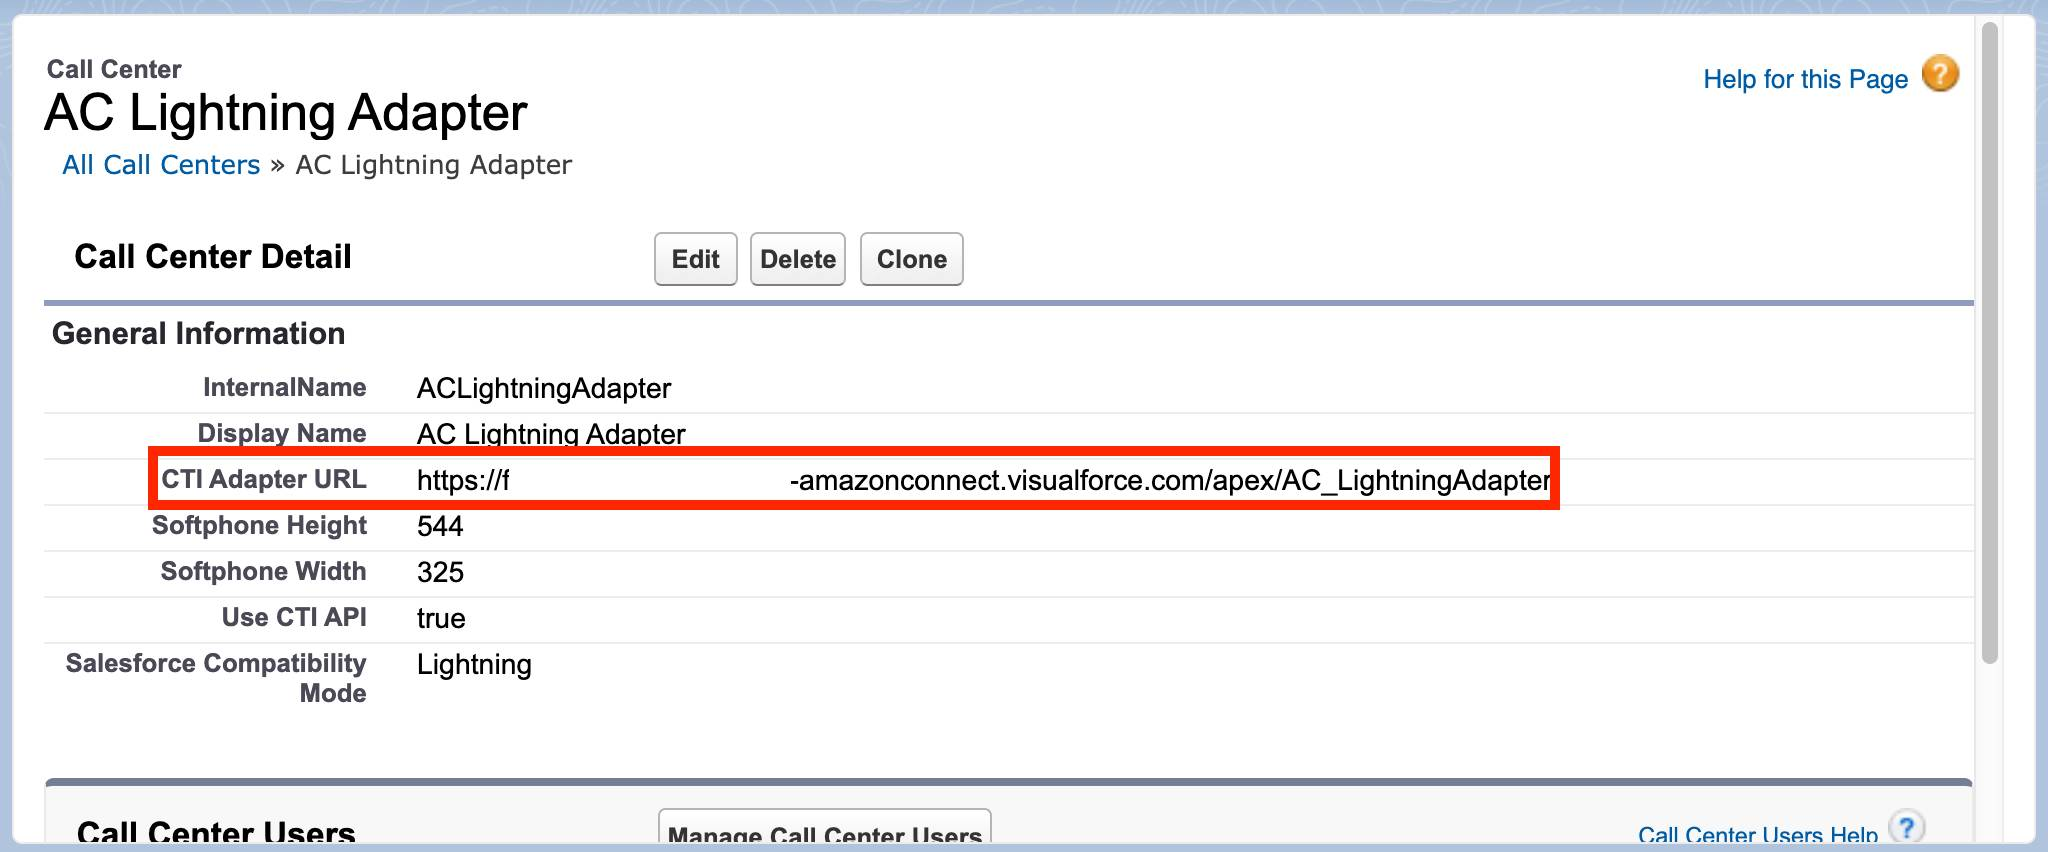 AC Lightning Adapter Call Center page in Setup with CTI Adapter URL field highlighted with a red box